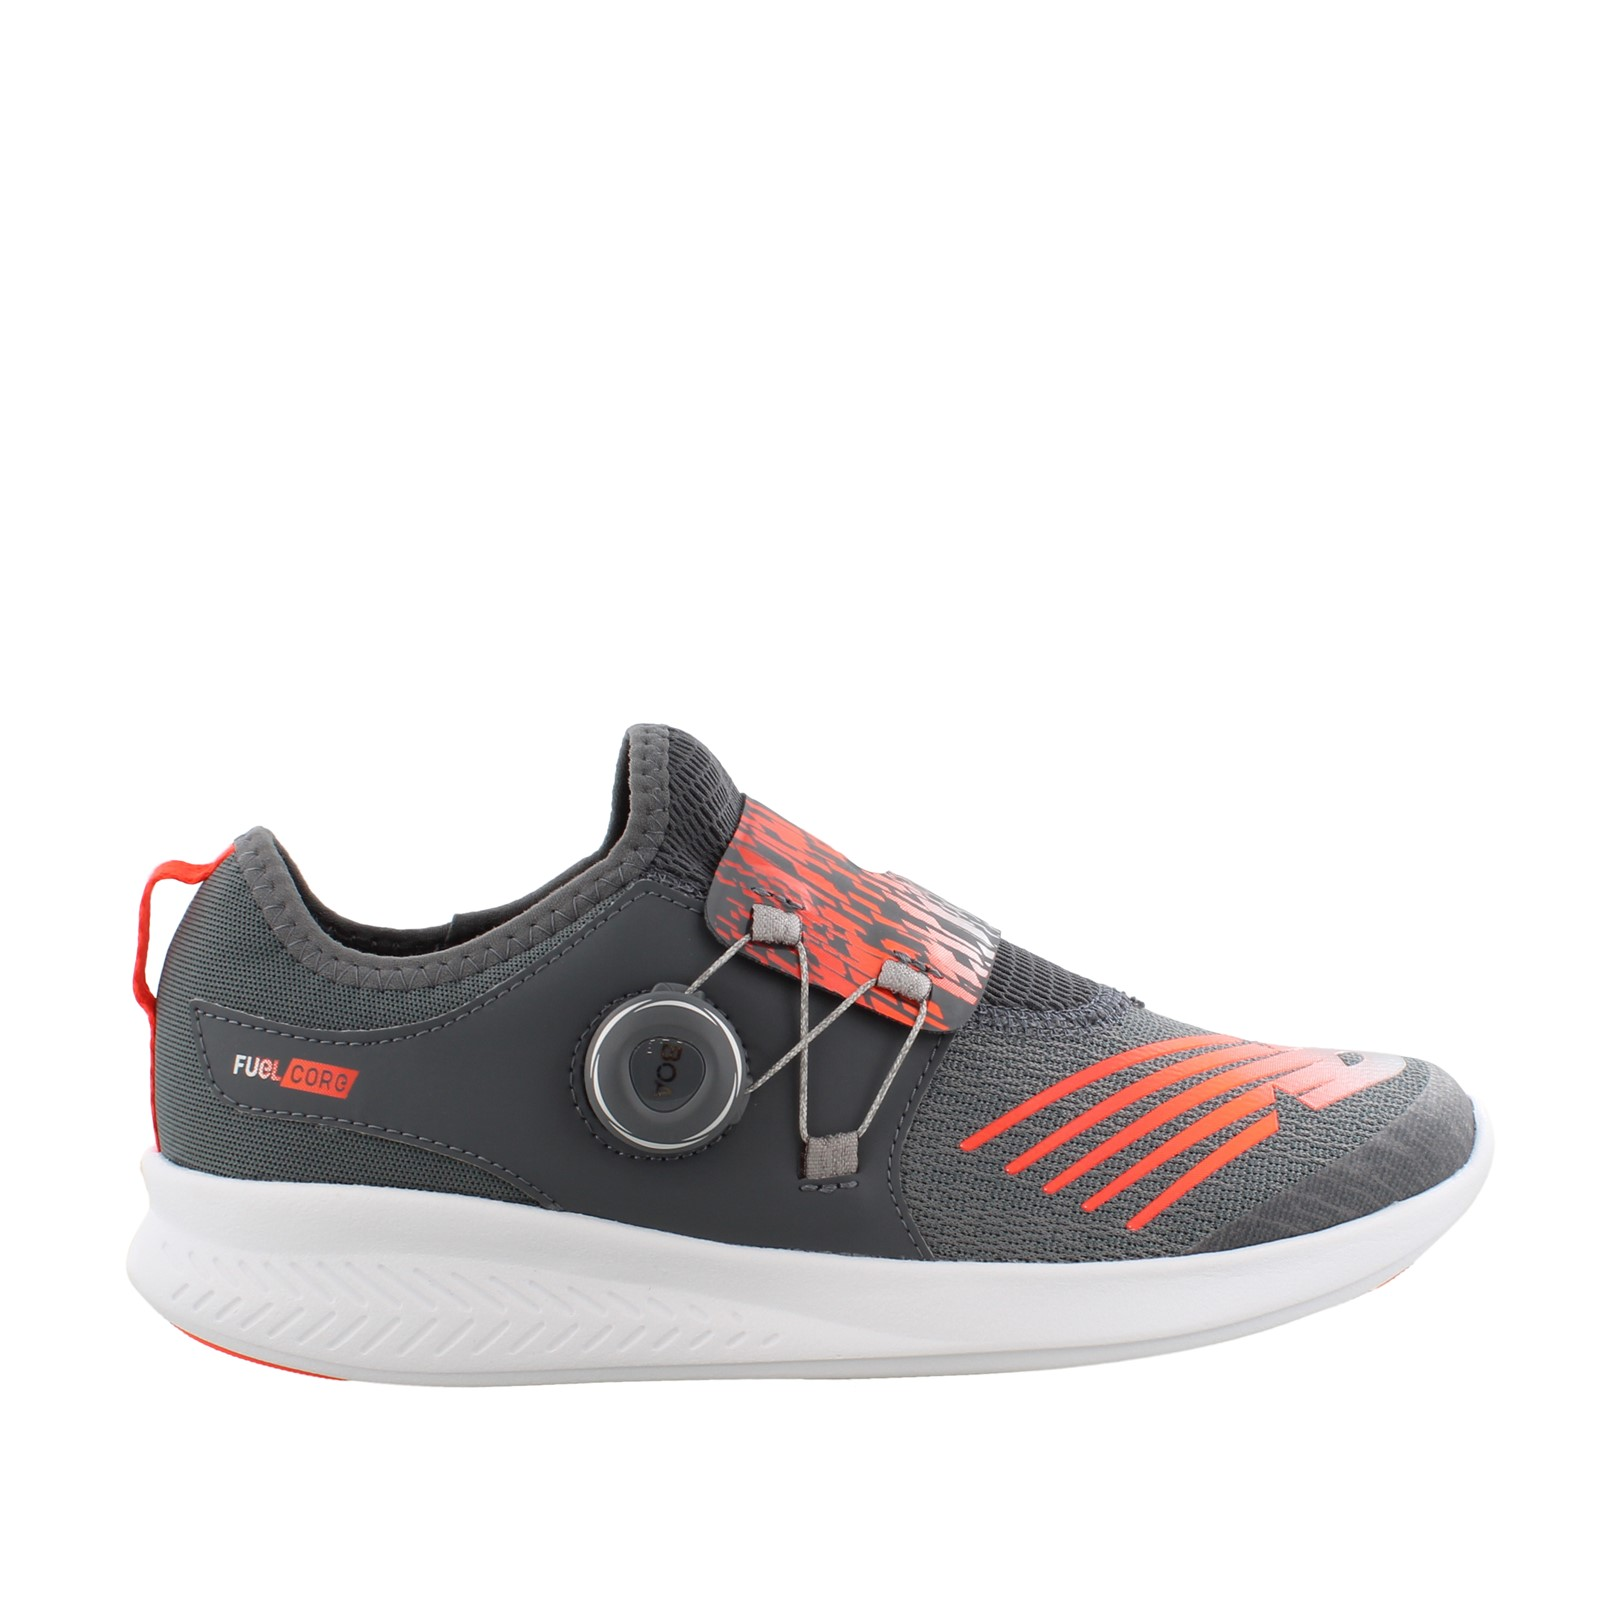 Boy's New Balance, Fuel Core Boa Sneakers